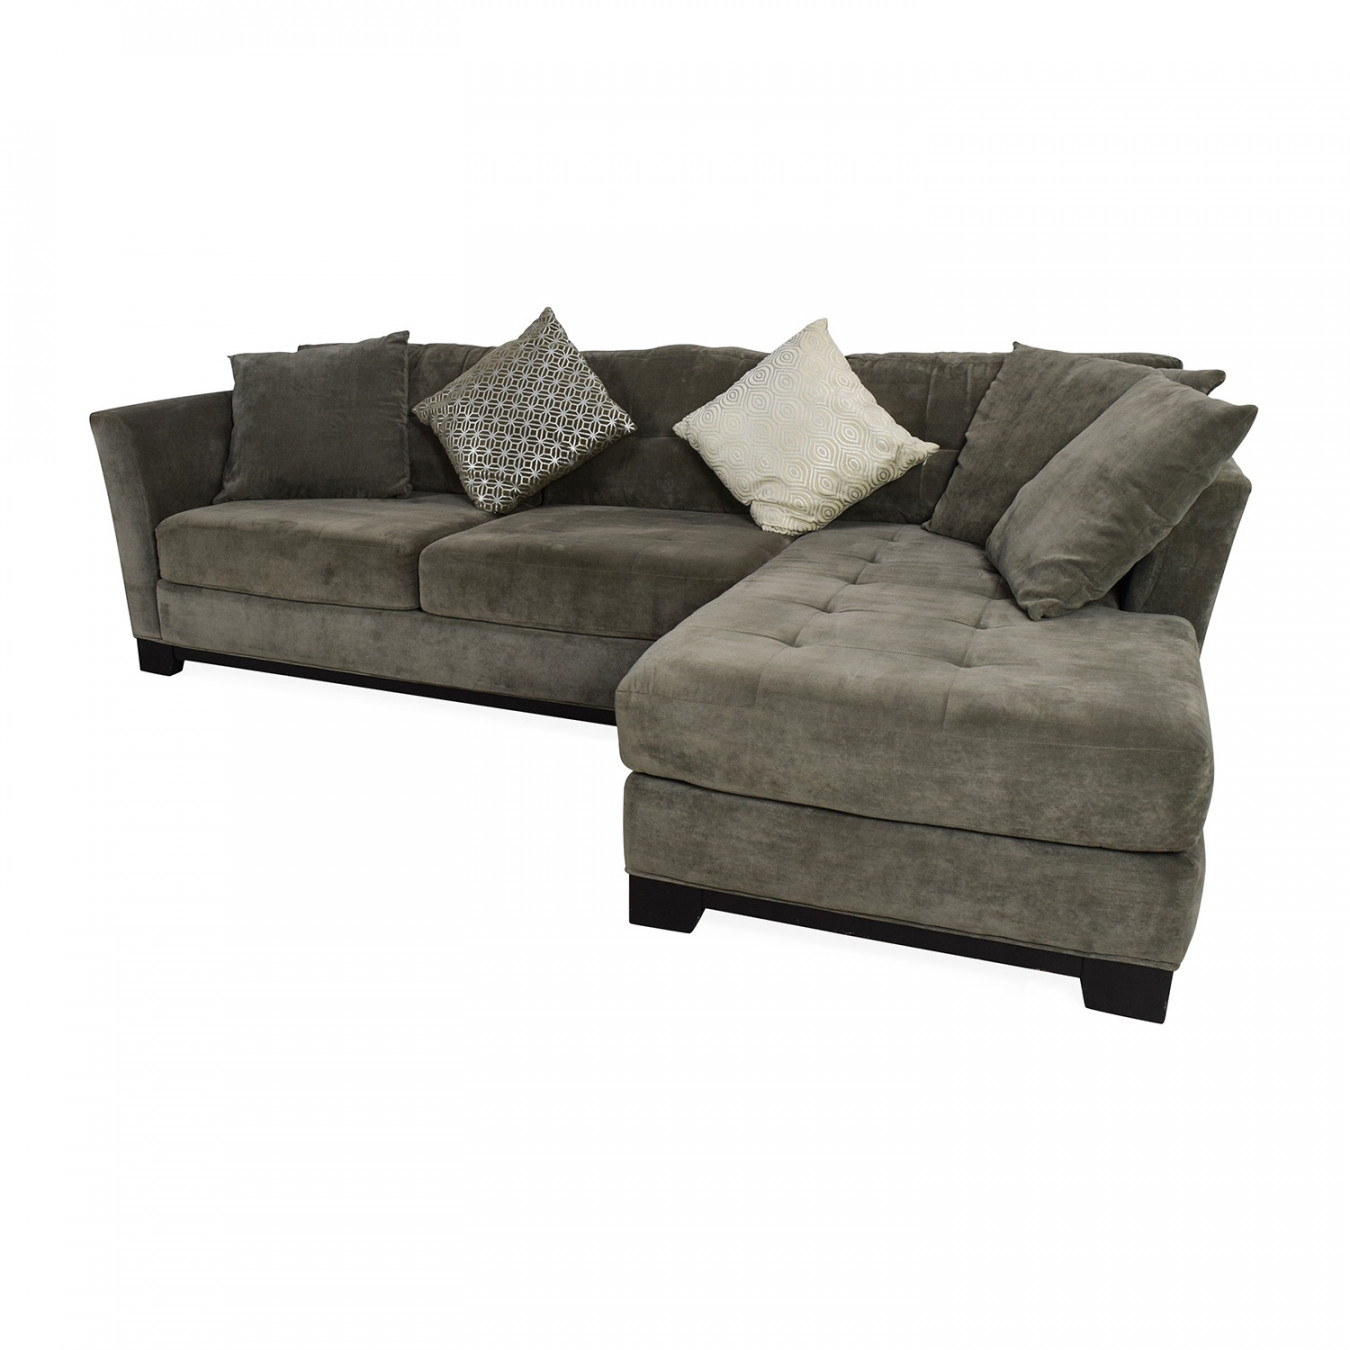 Sofas: Oversized Sectional With Chaise | Macys Sectional Sofa | Home Inside Macys Sectional Sofas (View 6 of 10)